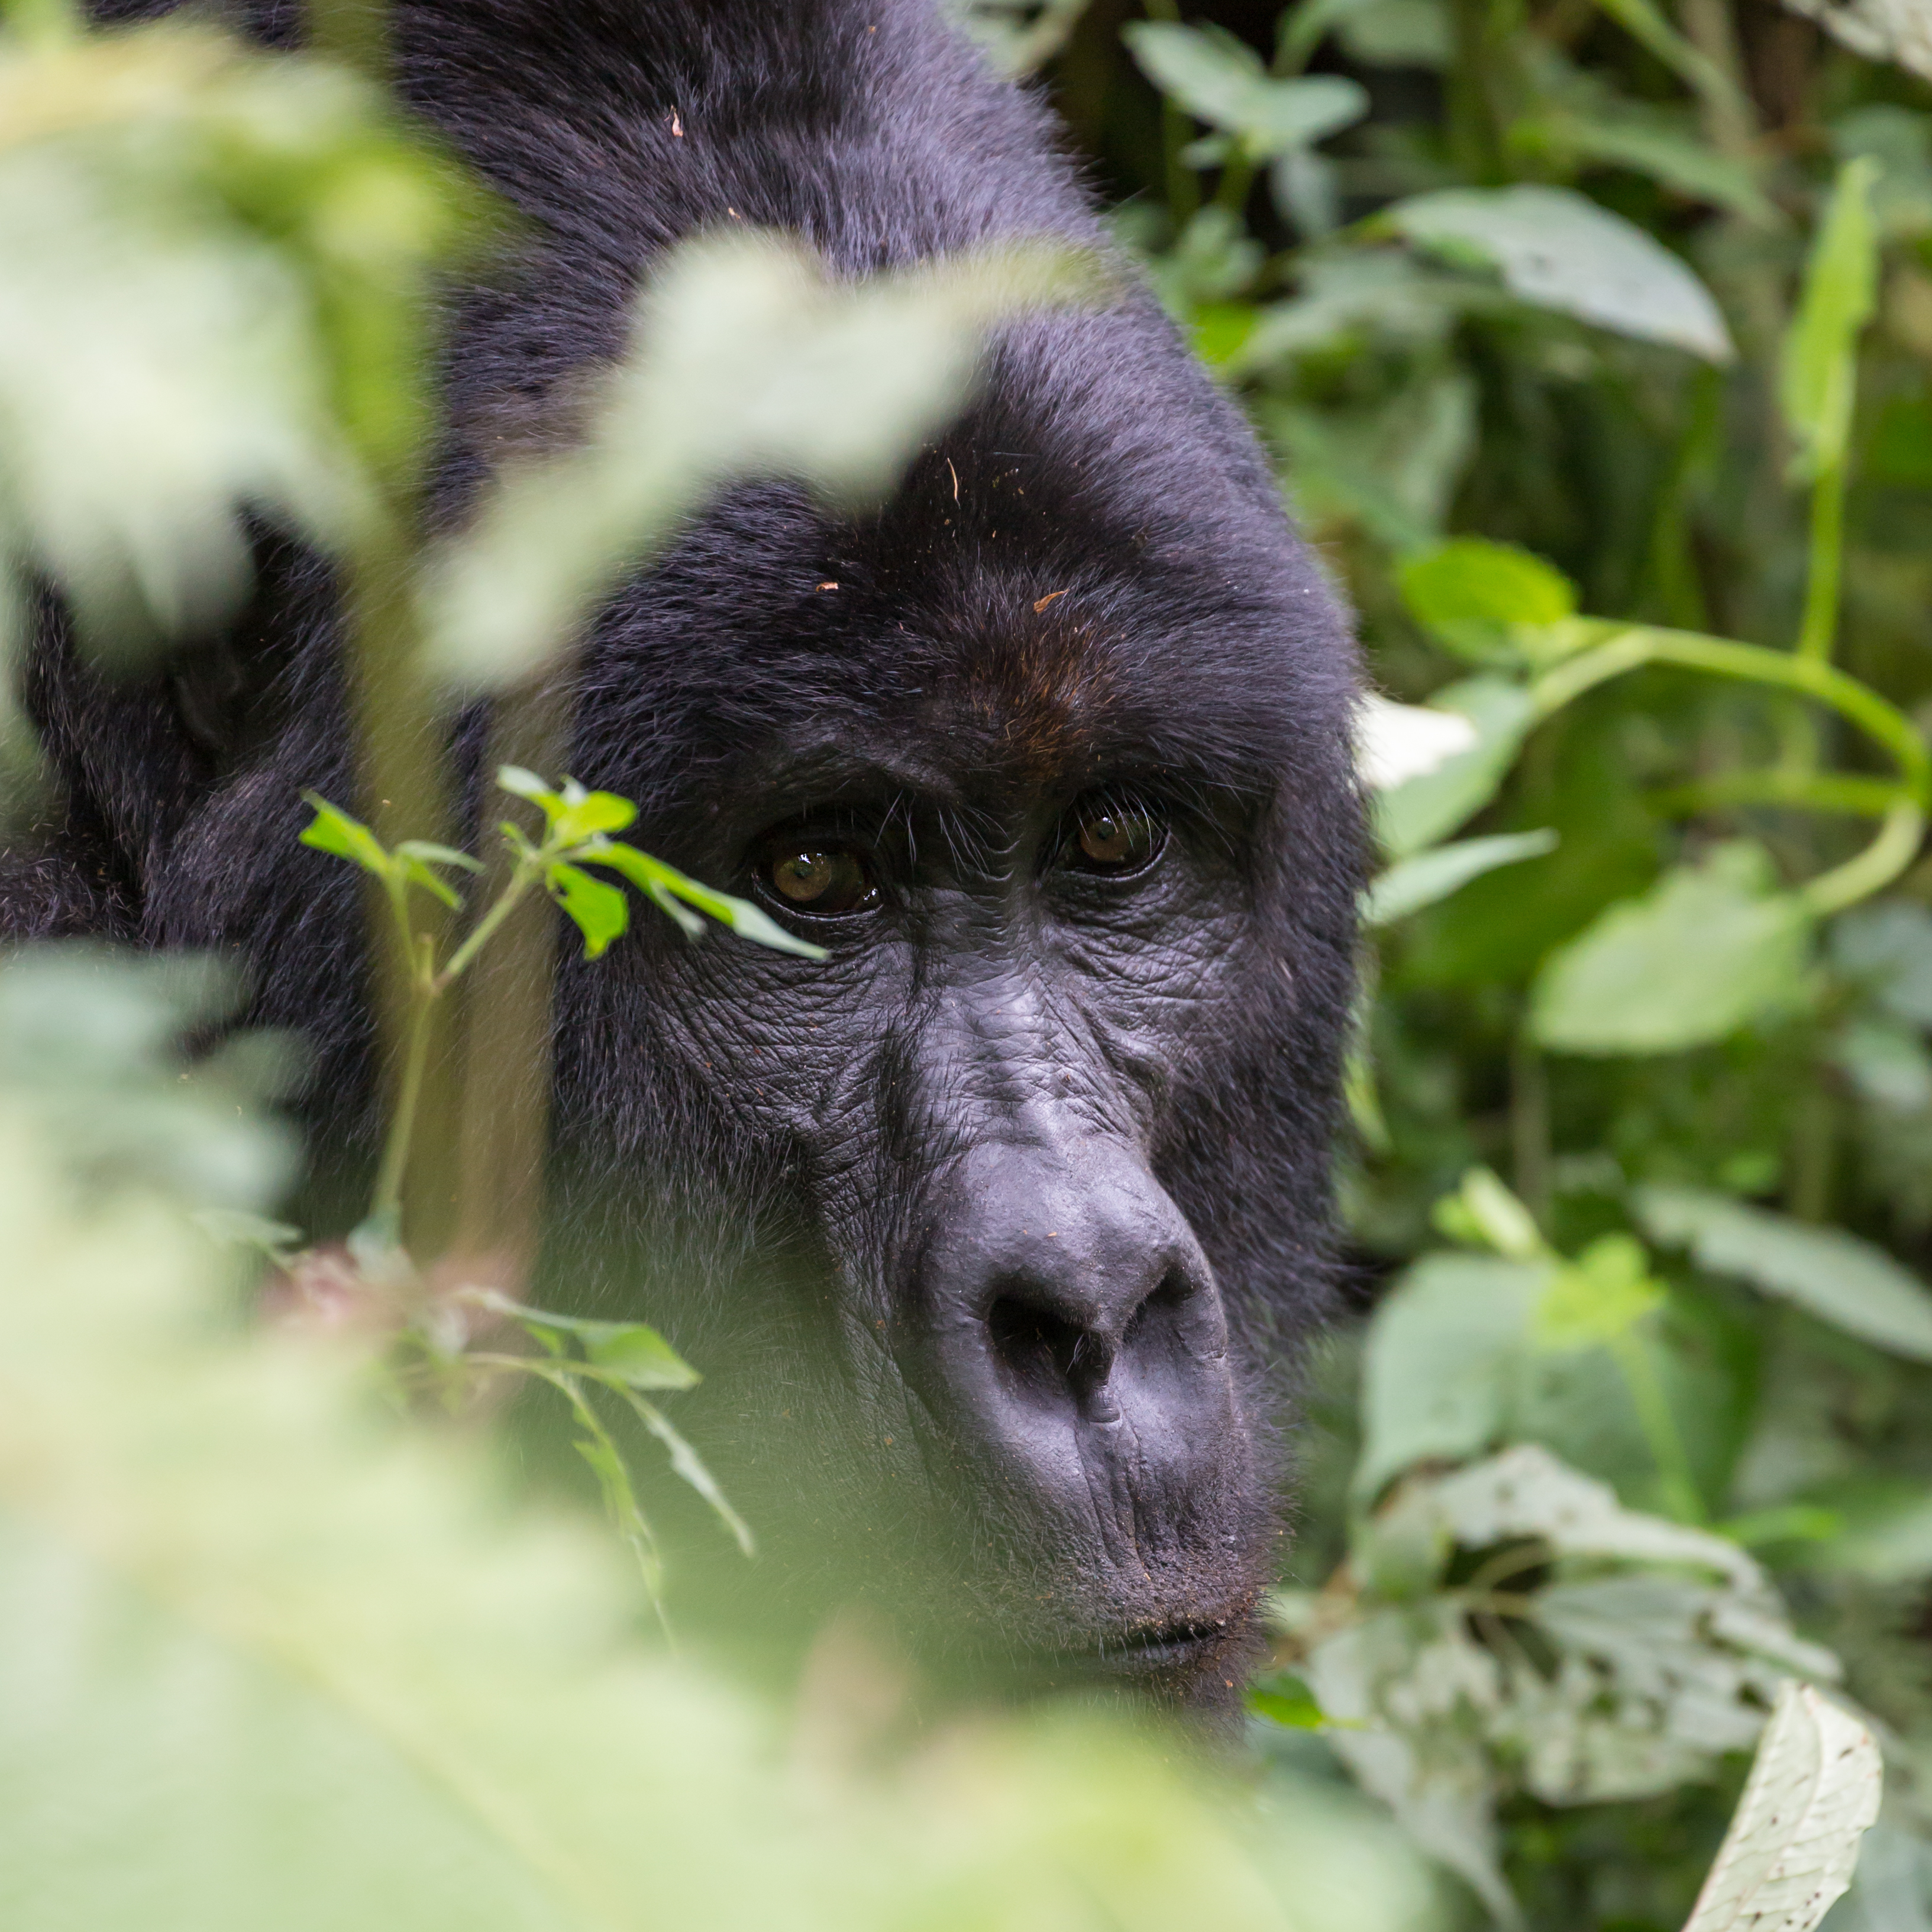 Mountain Gorilla, Bwindi Impenetrable Forest, Uganda